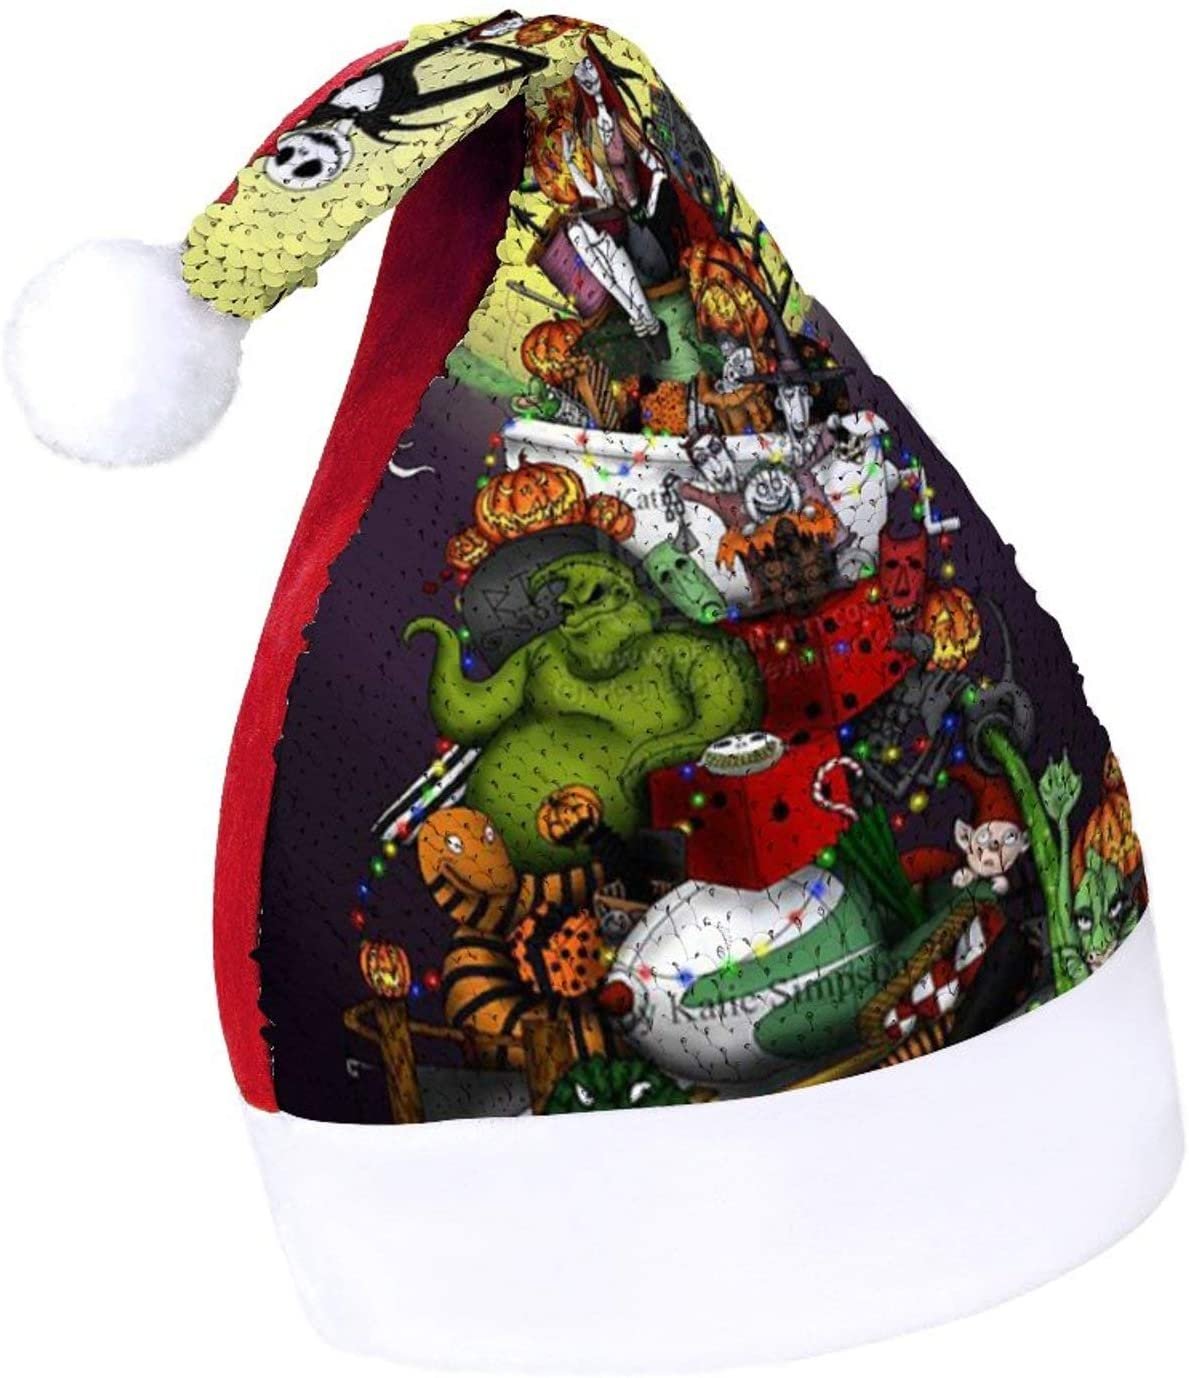 Christmas Hat The Terrible Nightmare Before Christmas Fashion Xmas Party Cap Red/Green